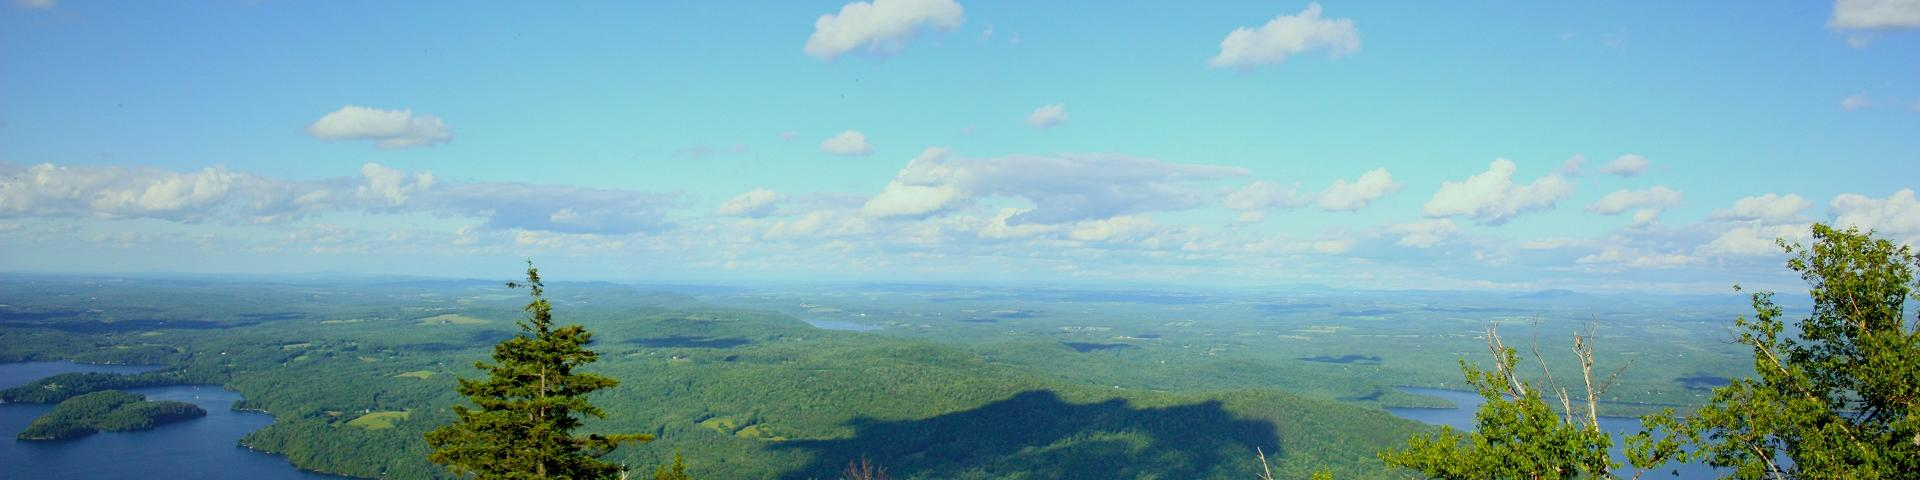 View of Lake Memphremagog from Owls Head mountain